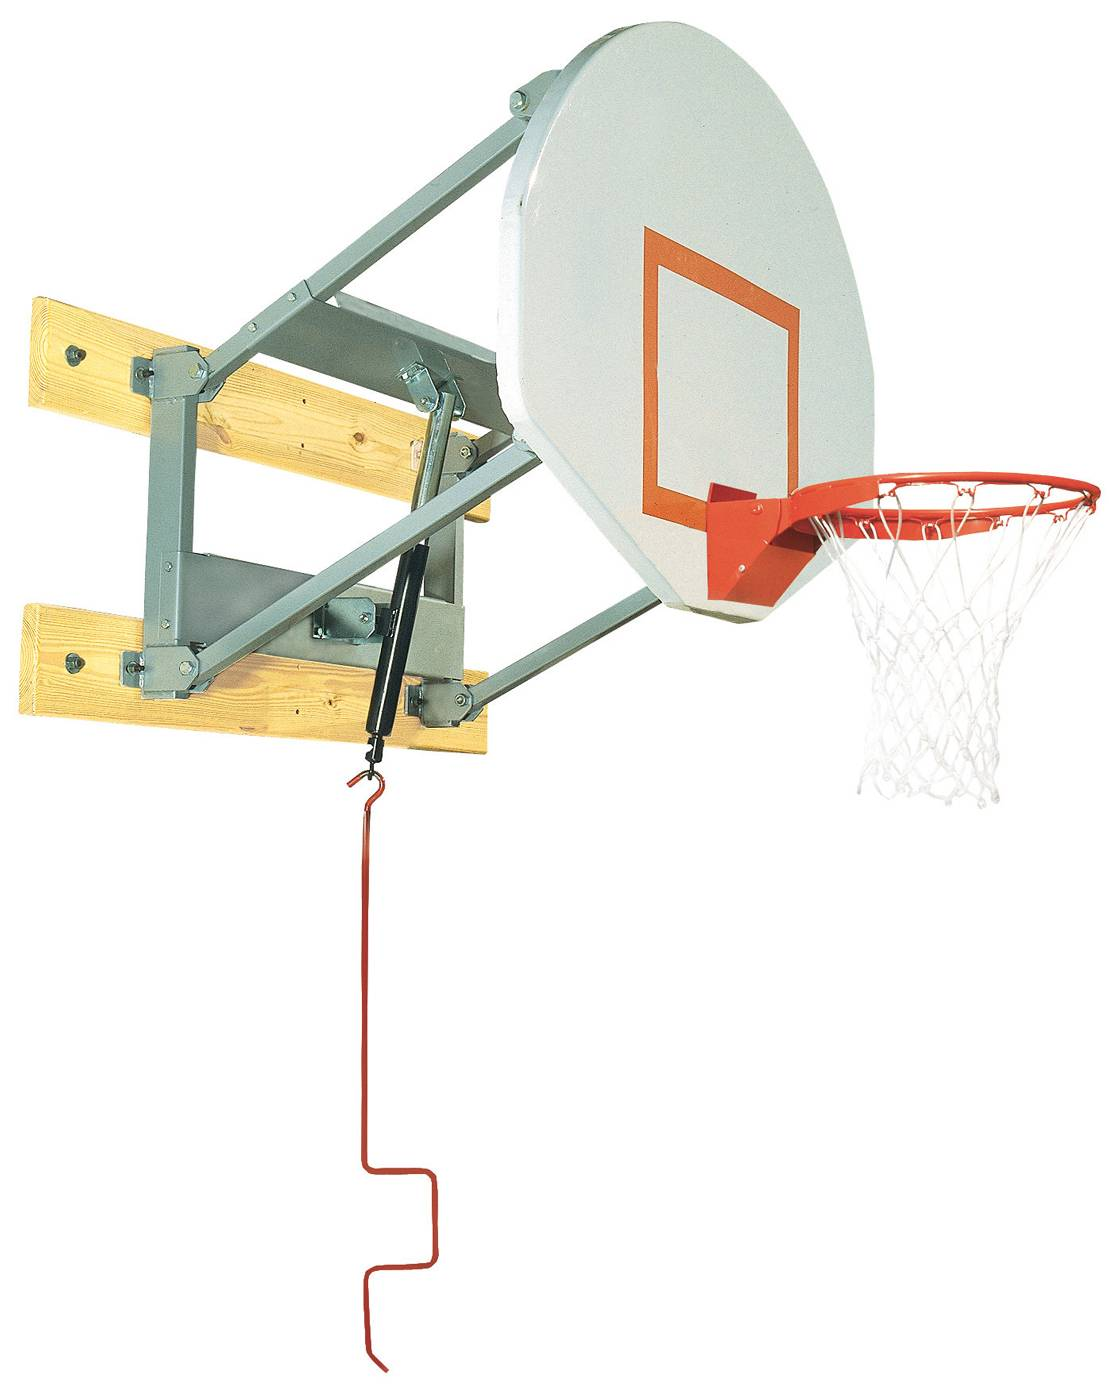 The Bison PKG600 Wall Mounted Adjustable Basketball Hoop Features A Easy  Adjustability And Can Be Mounted To A Vertical Wall. This Wall Mount Hoop  Adjusts ...